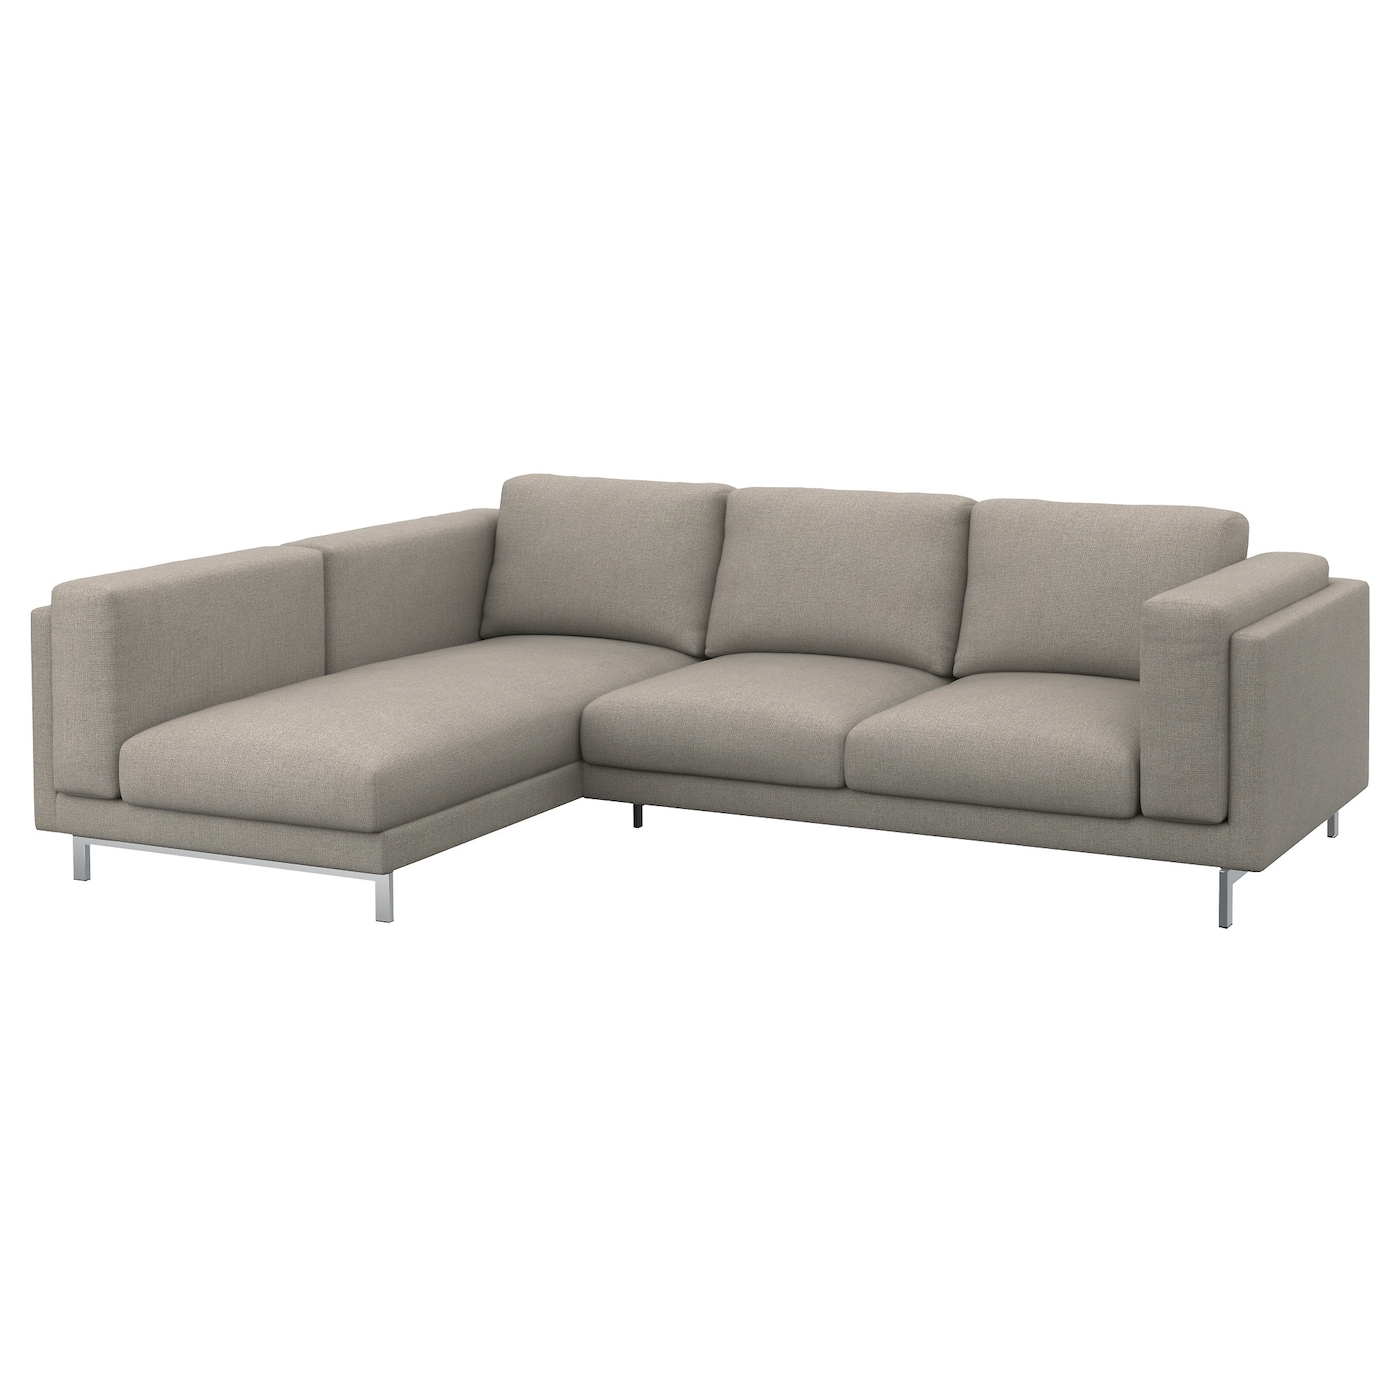 IKEA NOCKEBY cover two-seat sofa w chaise longue